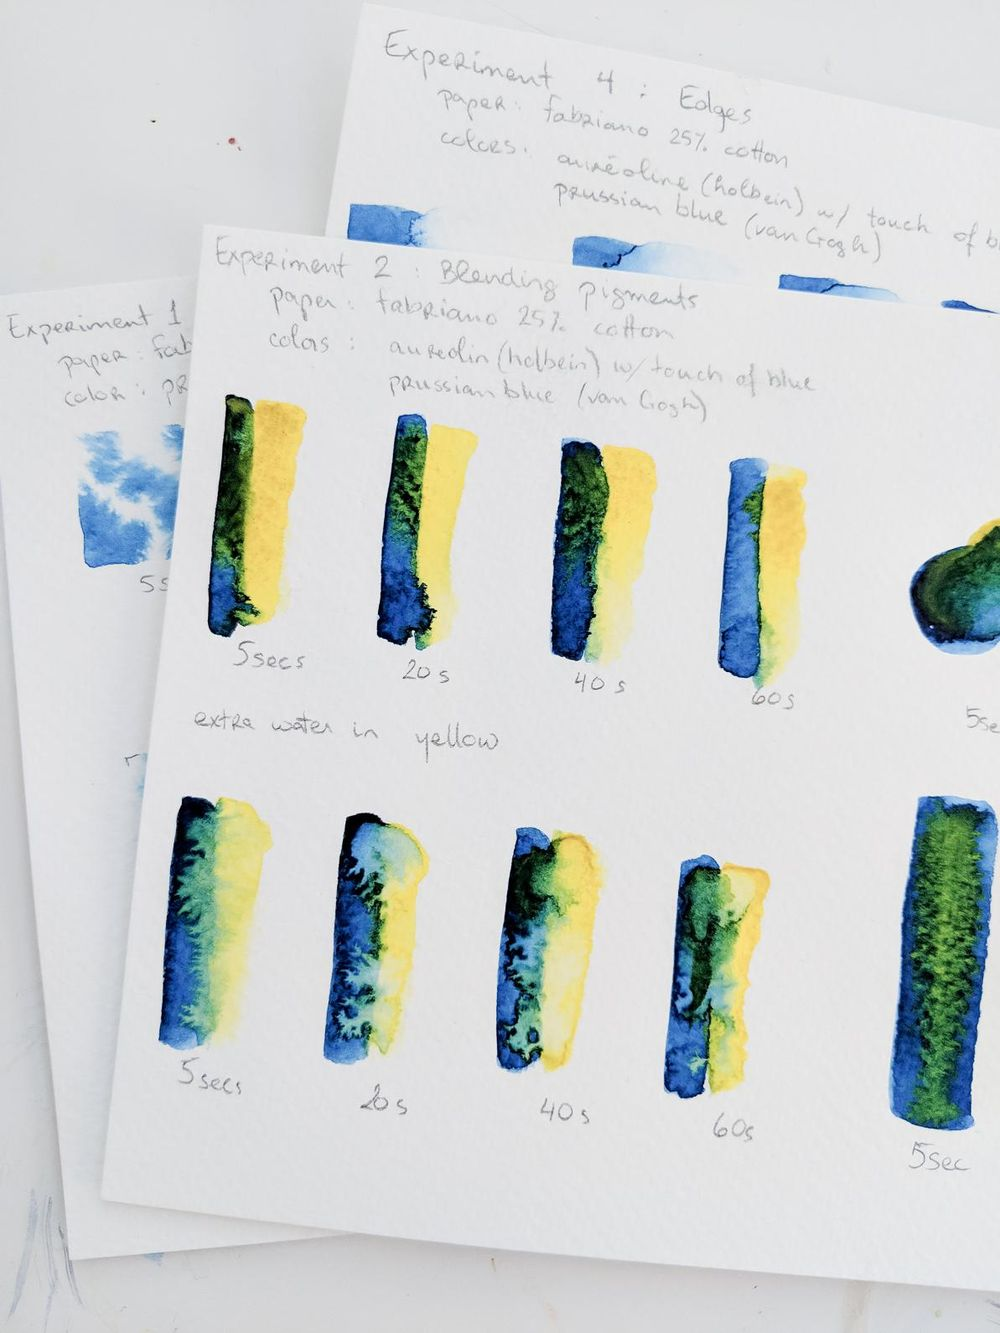 Experiments in watercolors with Ohn Mar Win - image 3 - student project